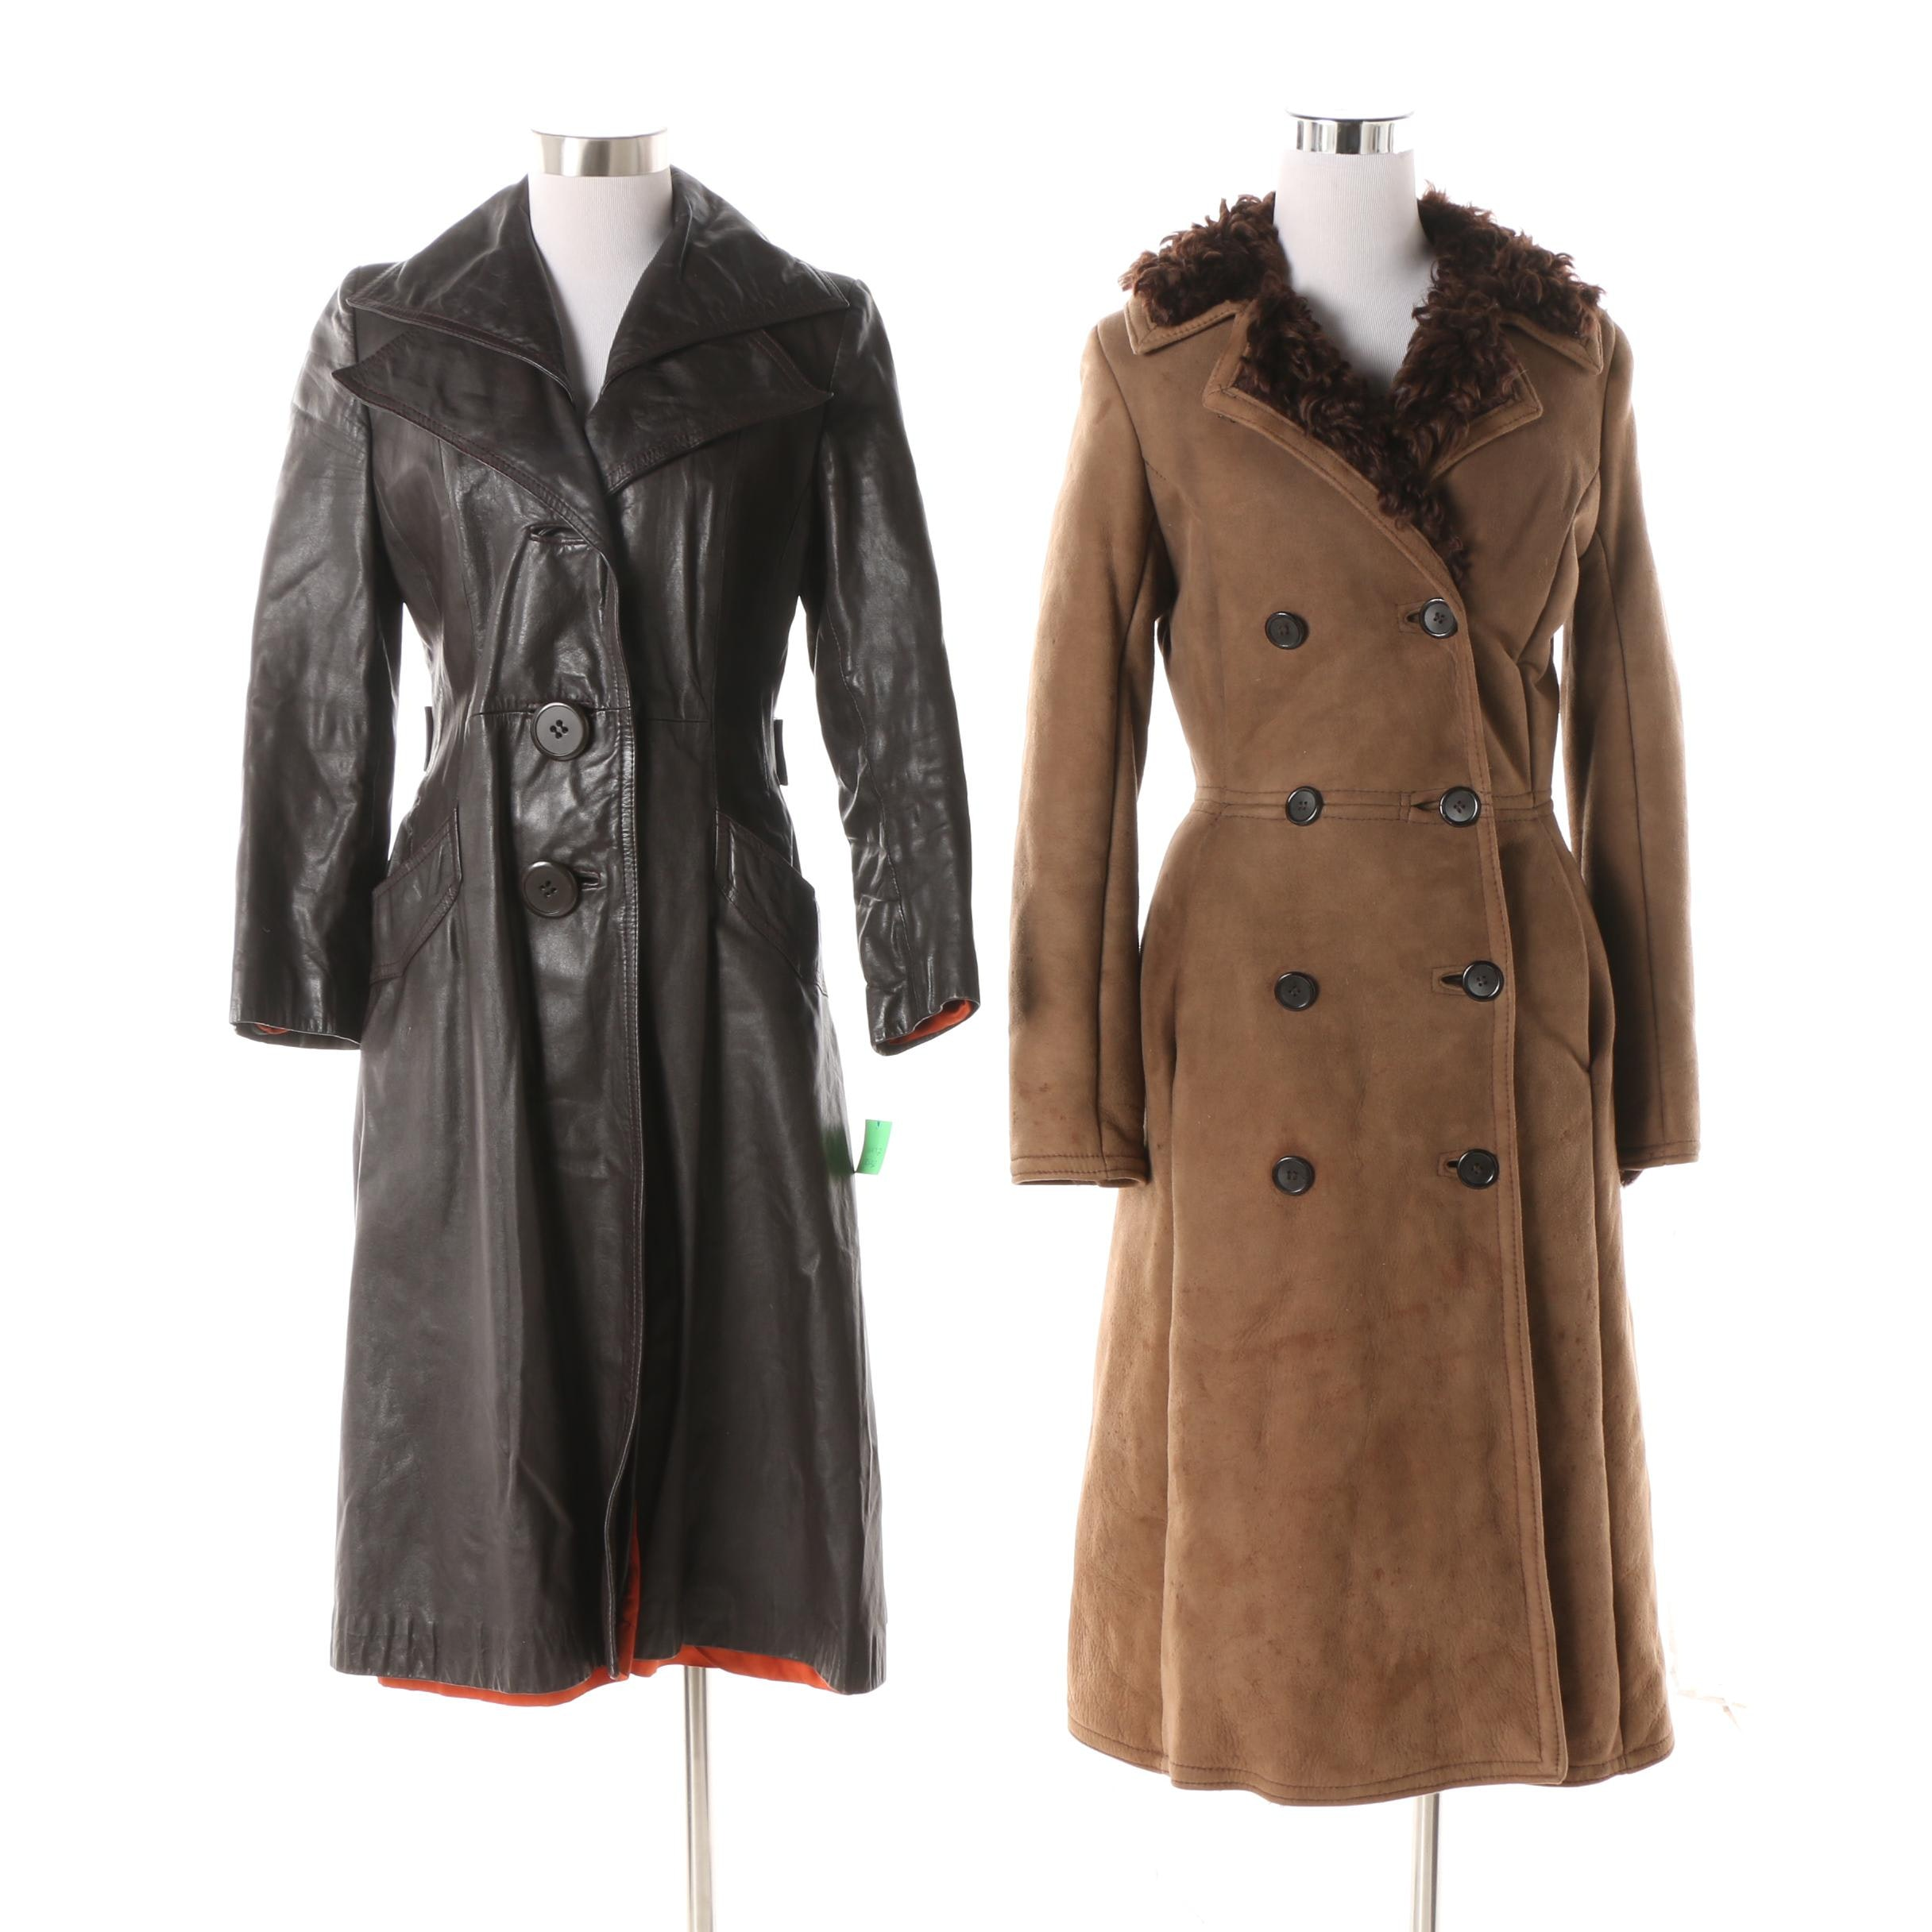 Circa 1970s Double-Breasted Sheepskin Fur Lined Coat and Black Leather Trench